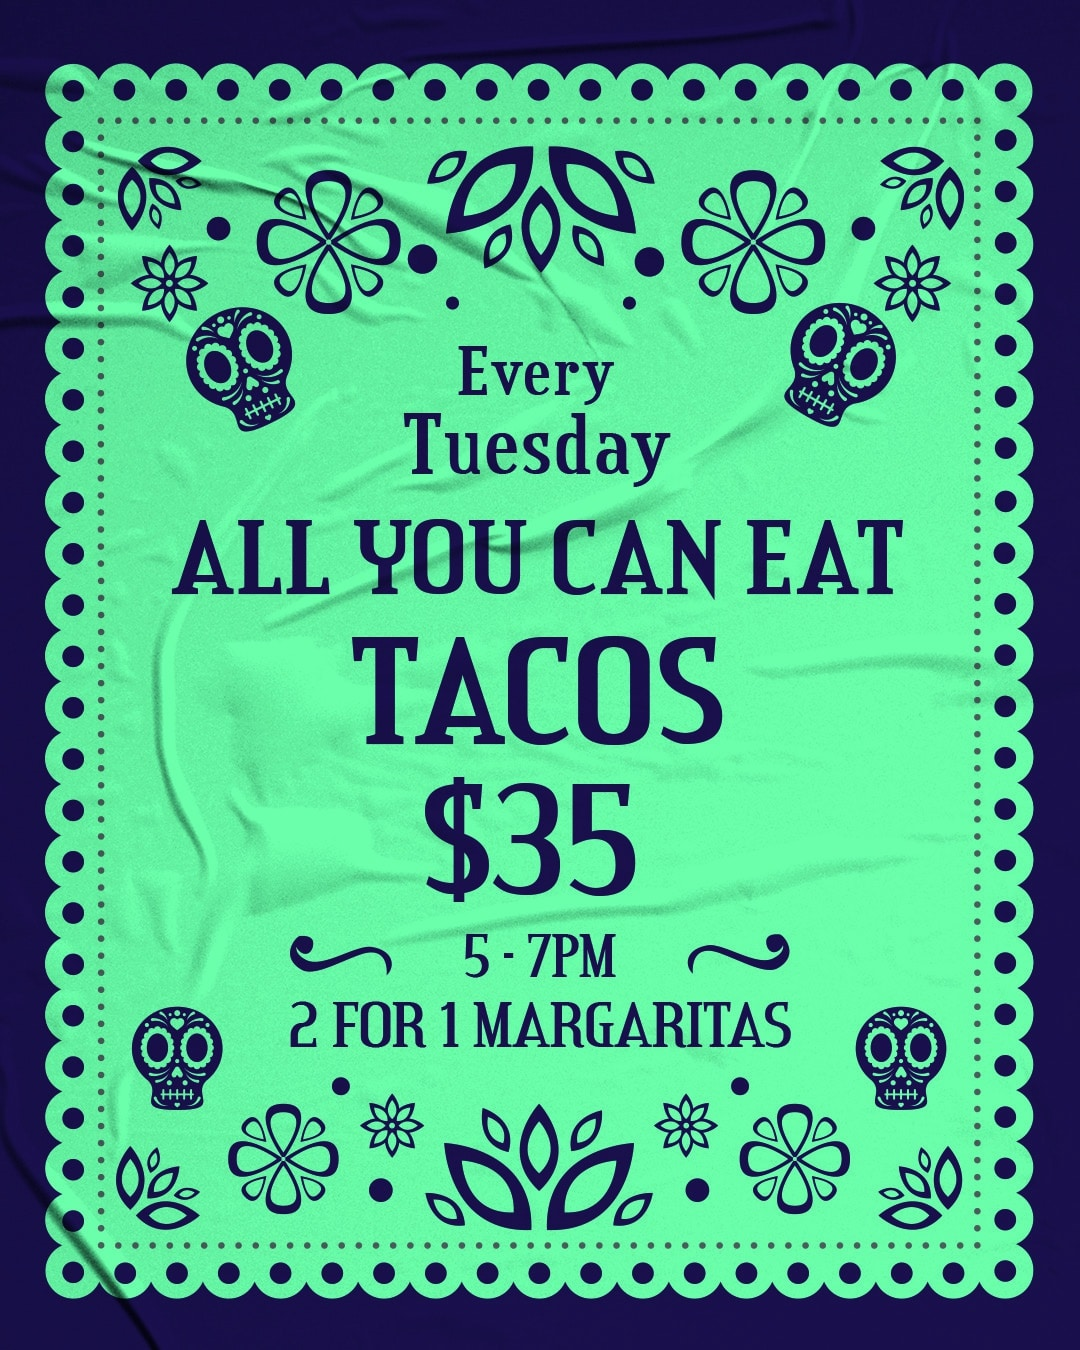 All You Can Eat Tacos